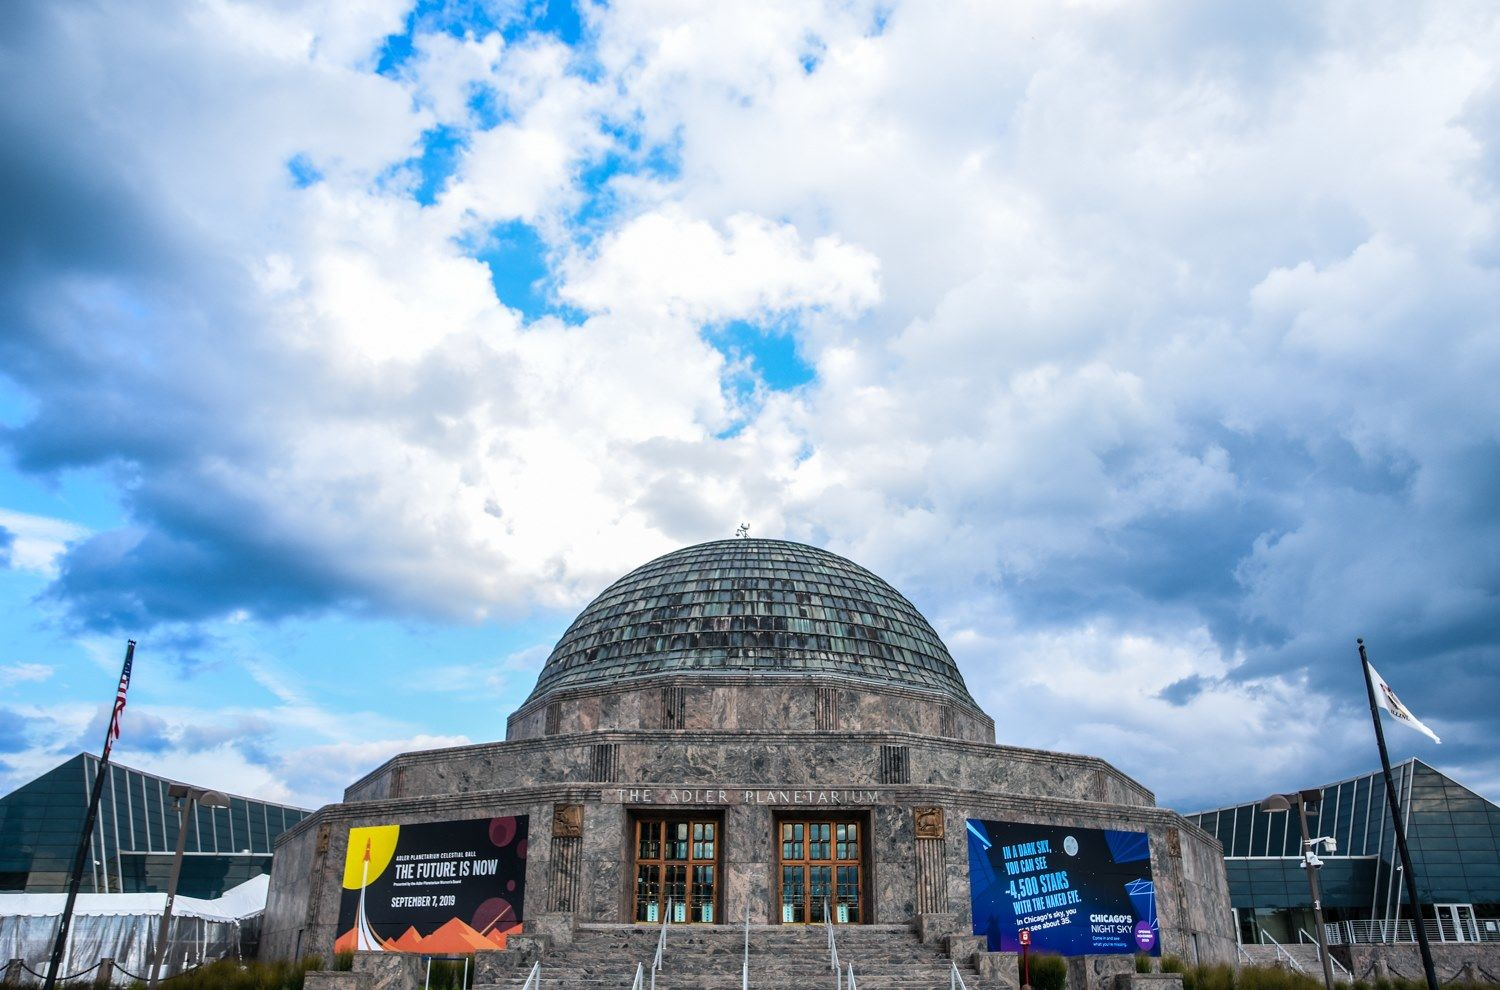 adler planetarium illinois resident free days february 14